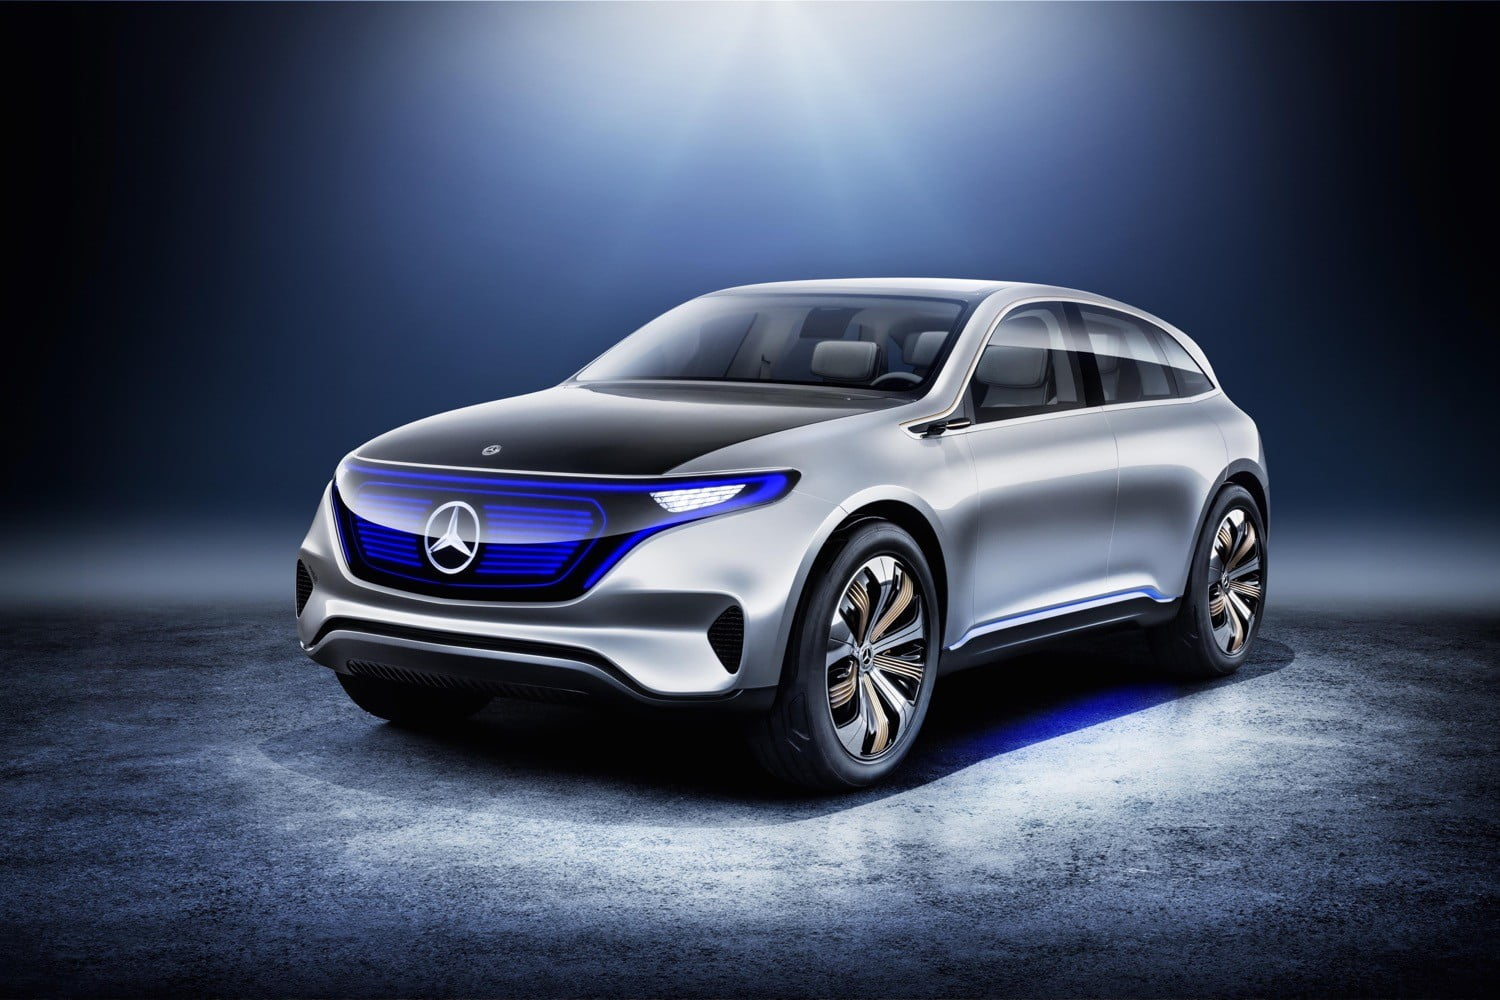 Mercedes Benz Generation Eq Concept